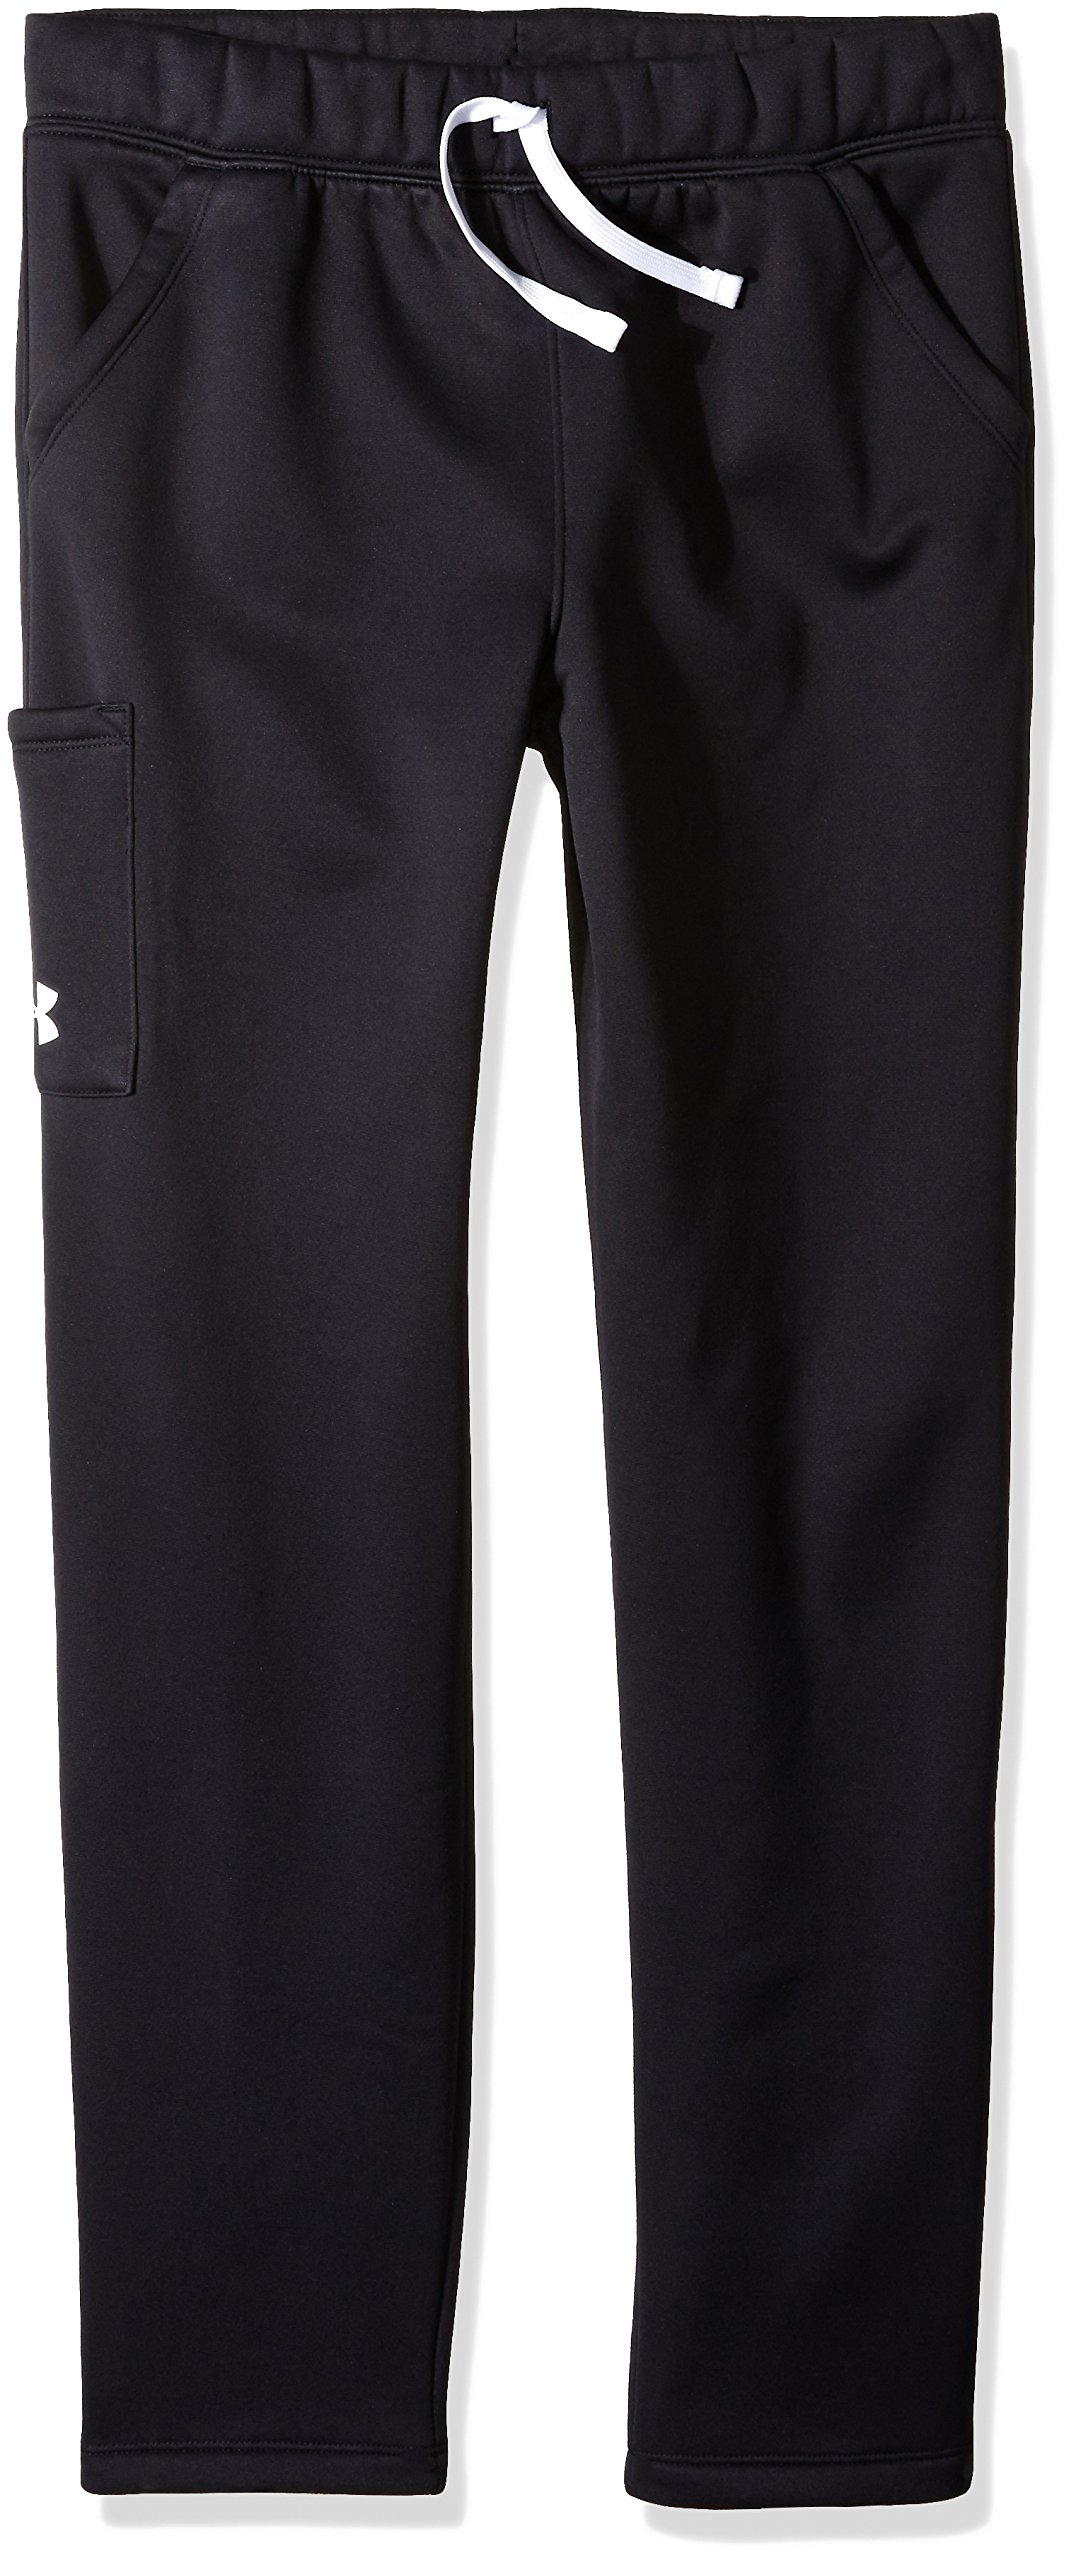 Under Armour Girls' Armour Fleece Pants,Black (001)/White, Youth X-Small by Under Armour